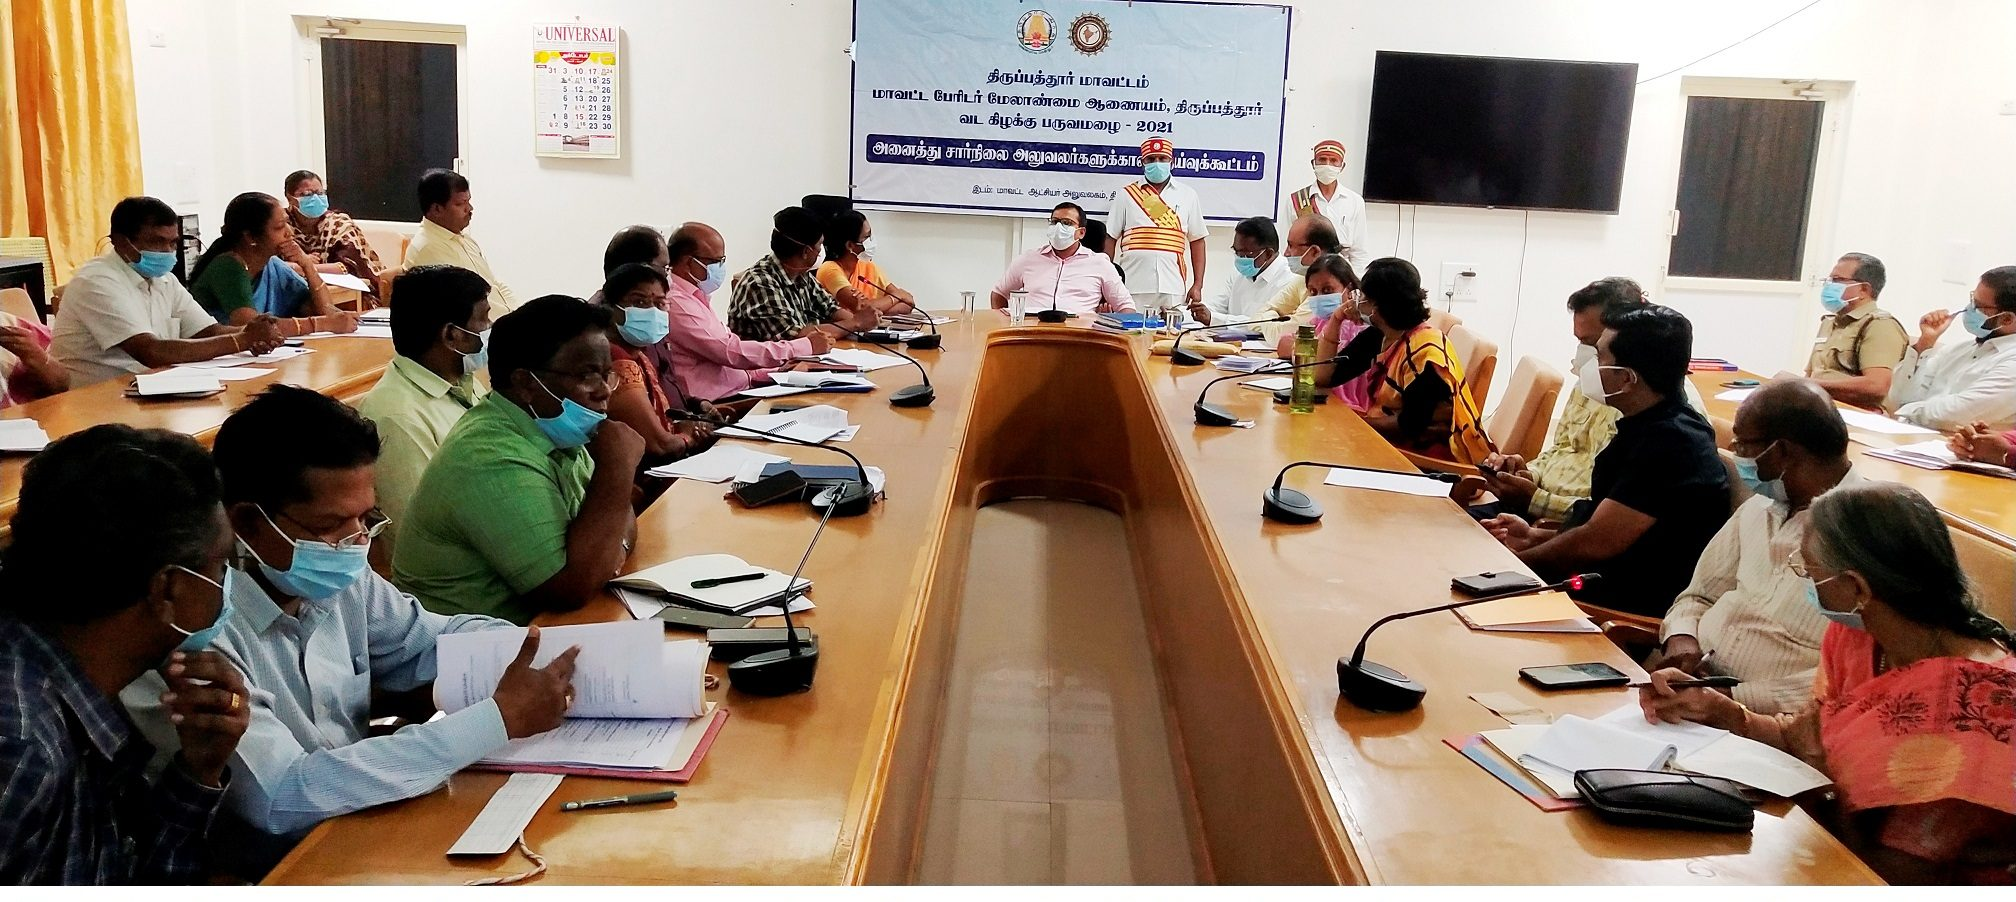 Collector Disaster and Covid Vaccination Meeting